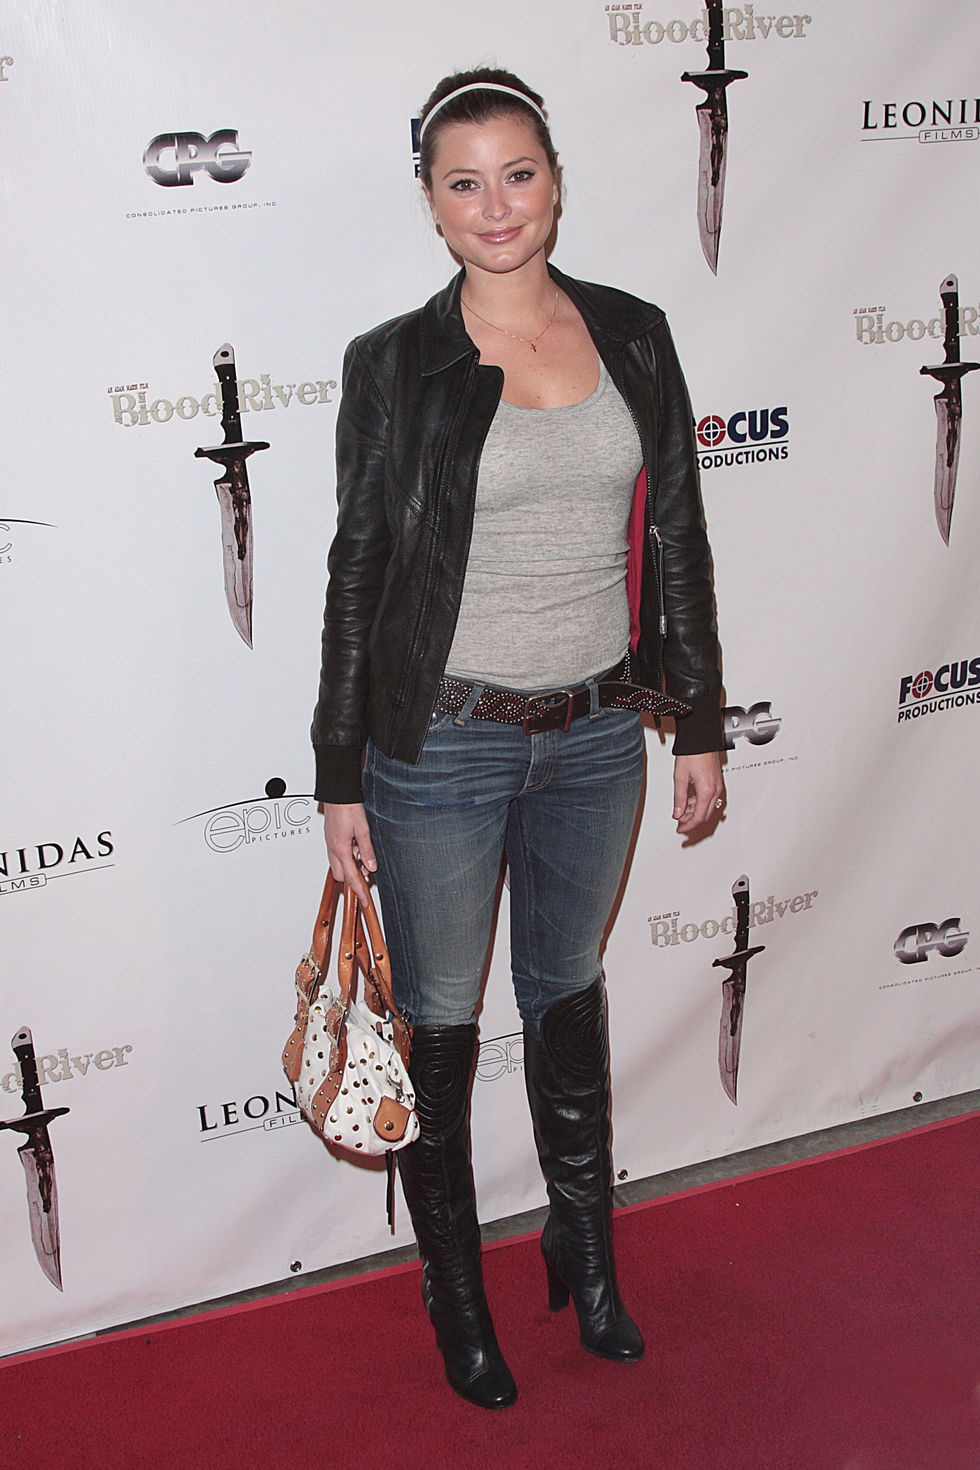 holly-valance-blood-river-premiere-in-los-angeles-01